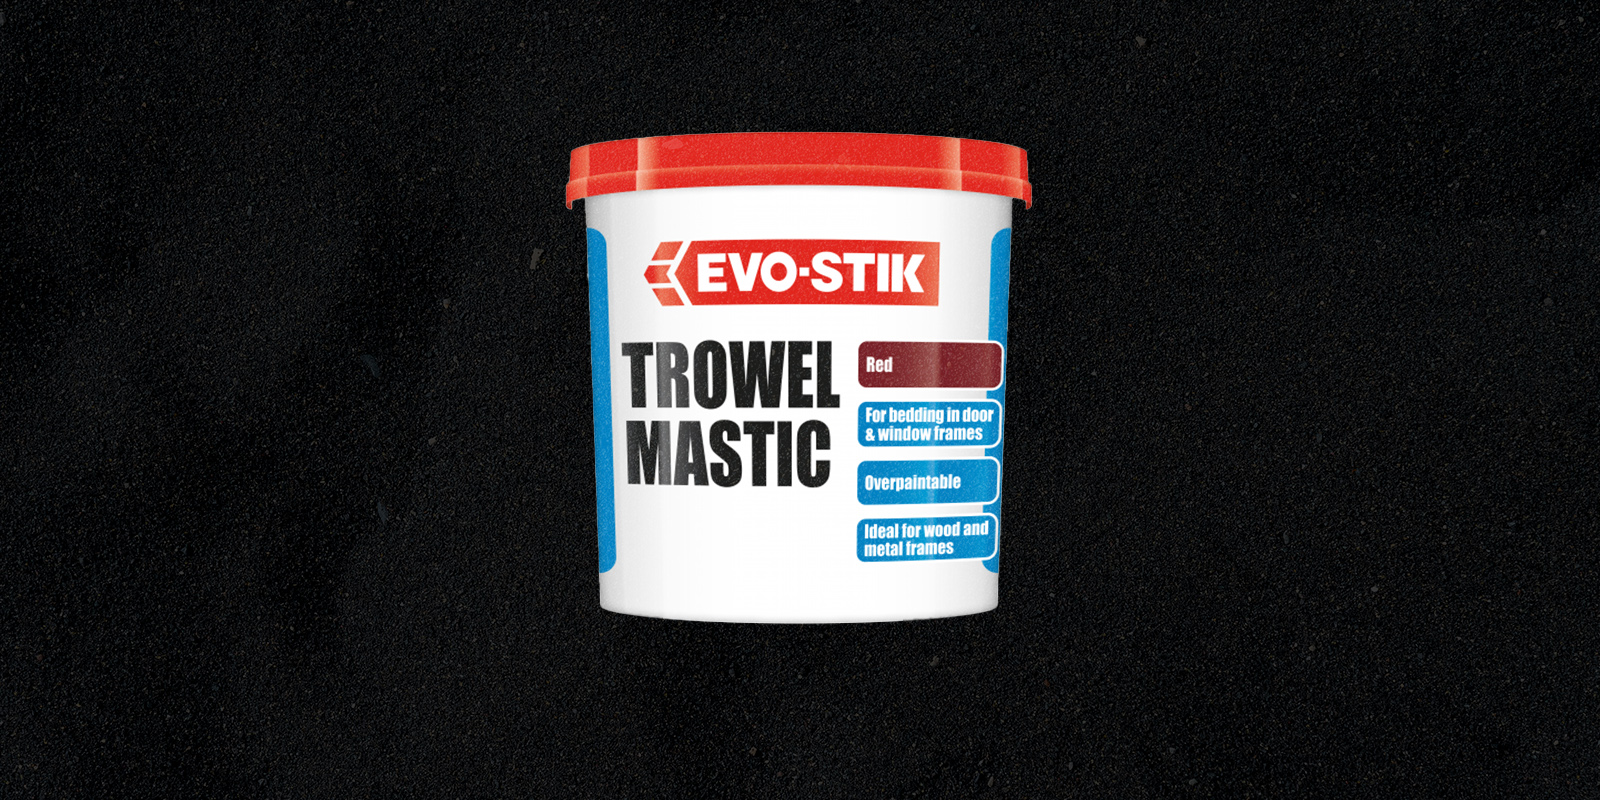 Guide: How to Apply Evo-Stik Trowel Mastic